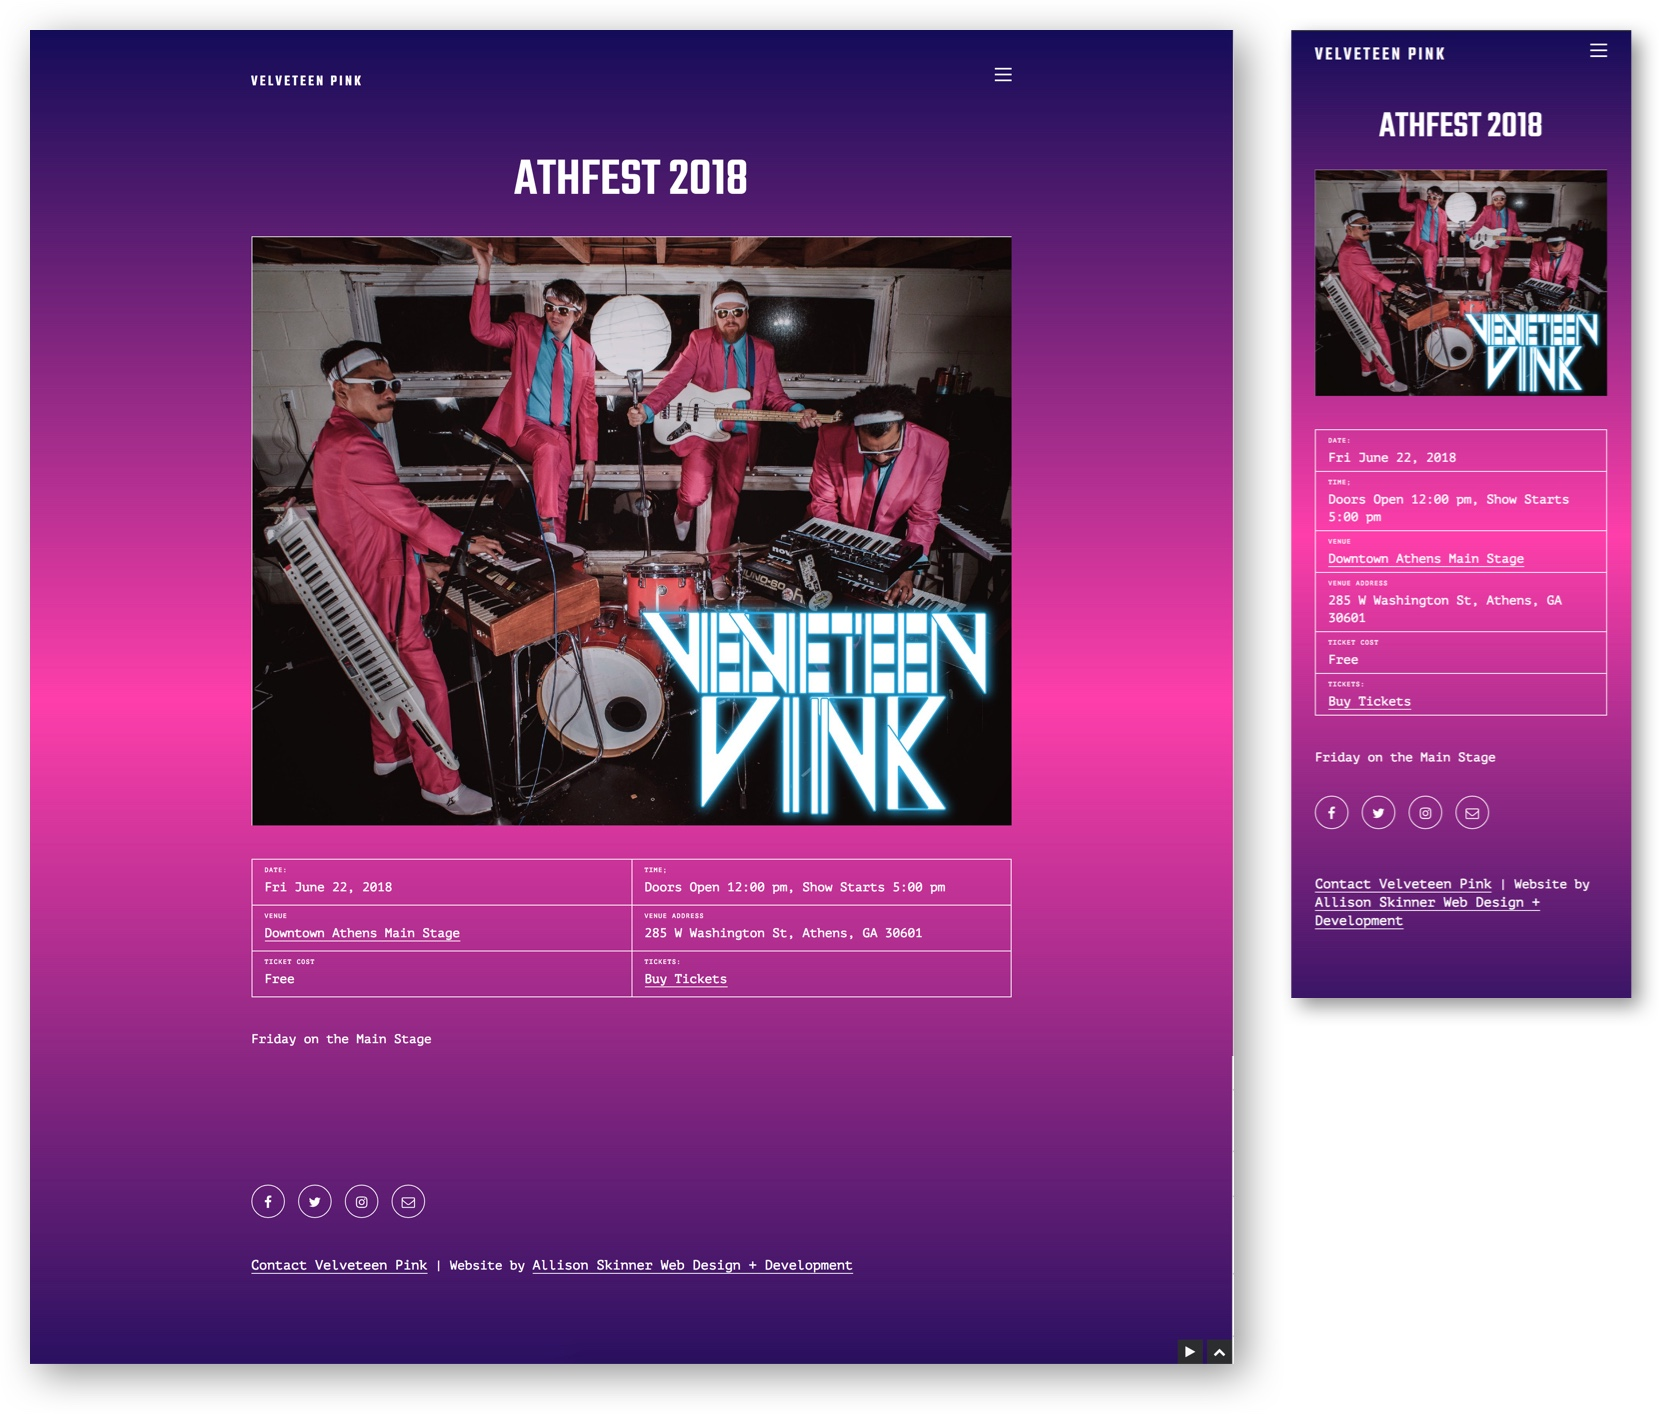 Velveteen Pink event page